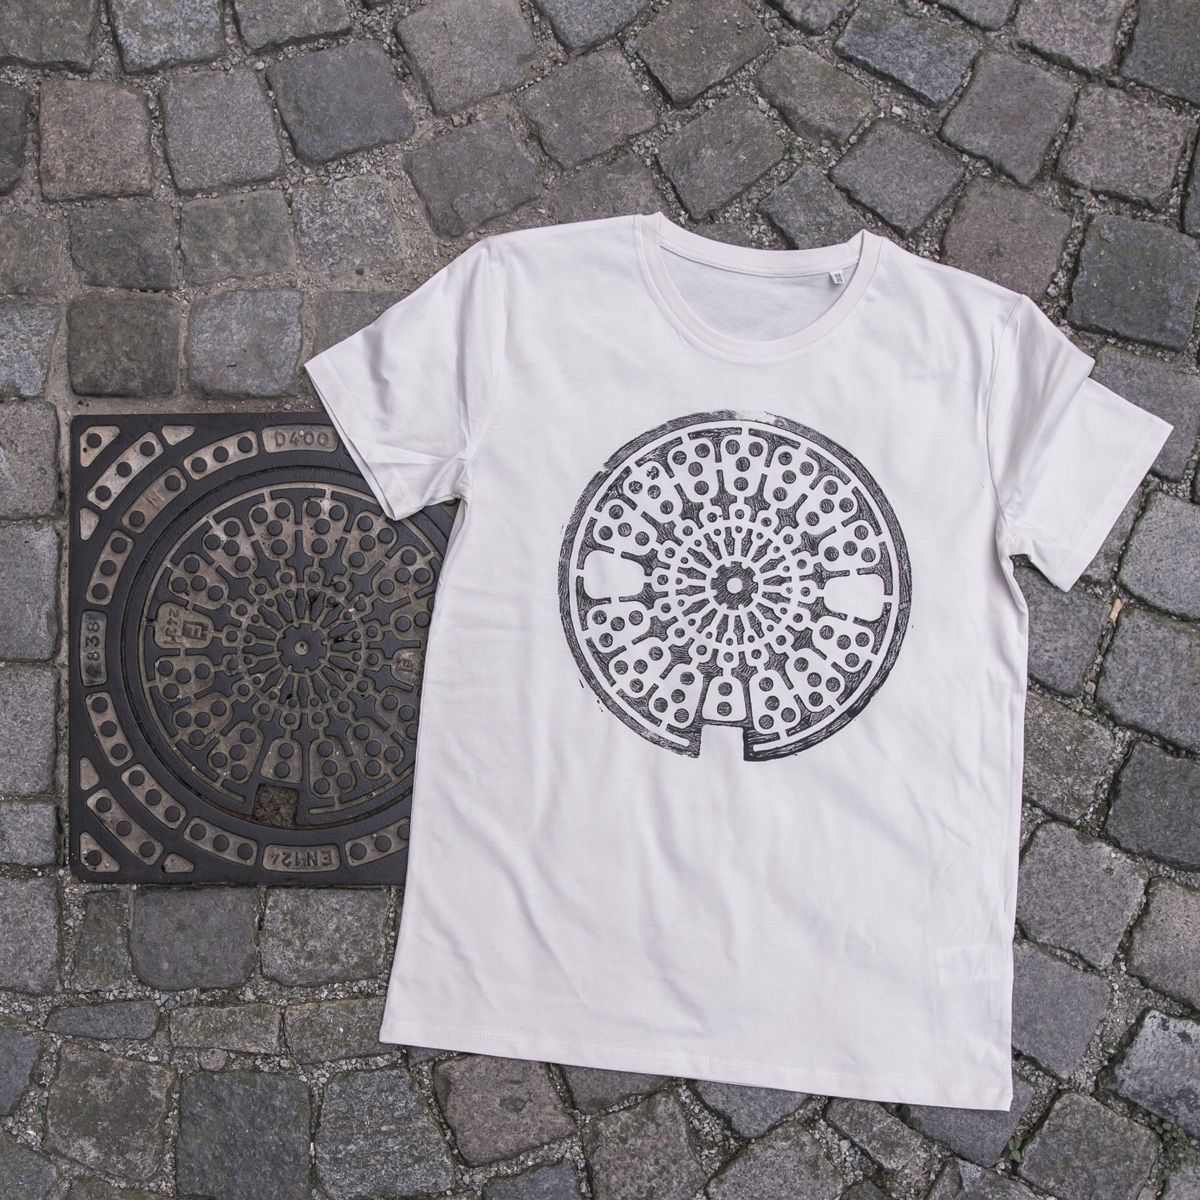 Unique Prints Of Surfaces Of The Urban Landscape And Other Elements On Streetwear Printed Directly On Site In The Streets Printed Shirts T Shirt Unique Print